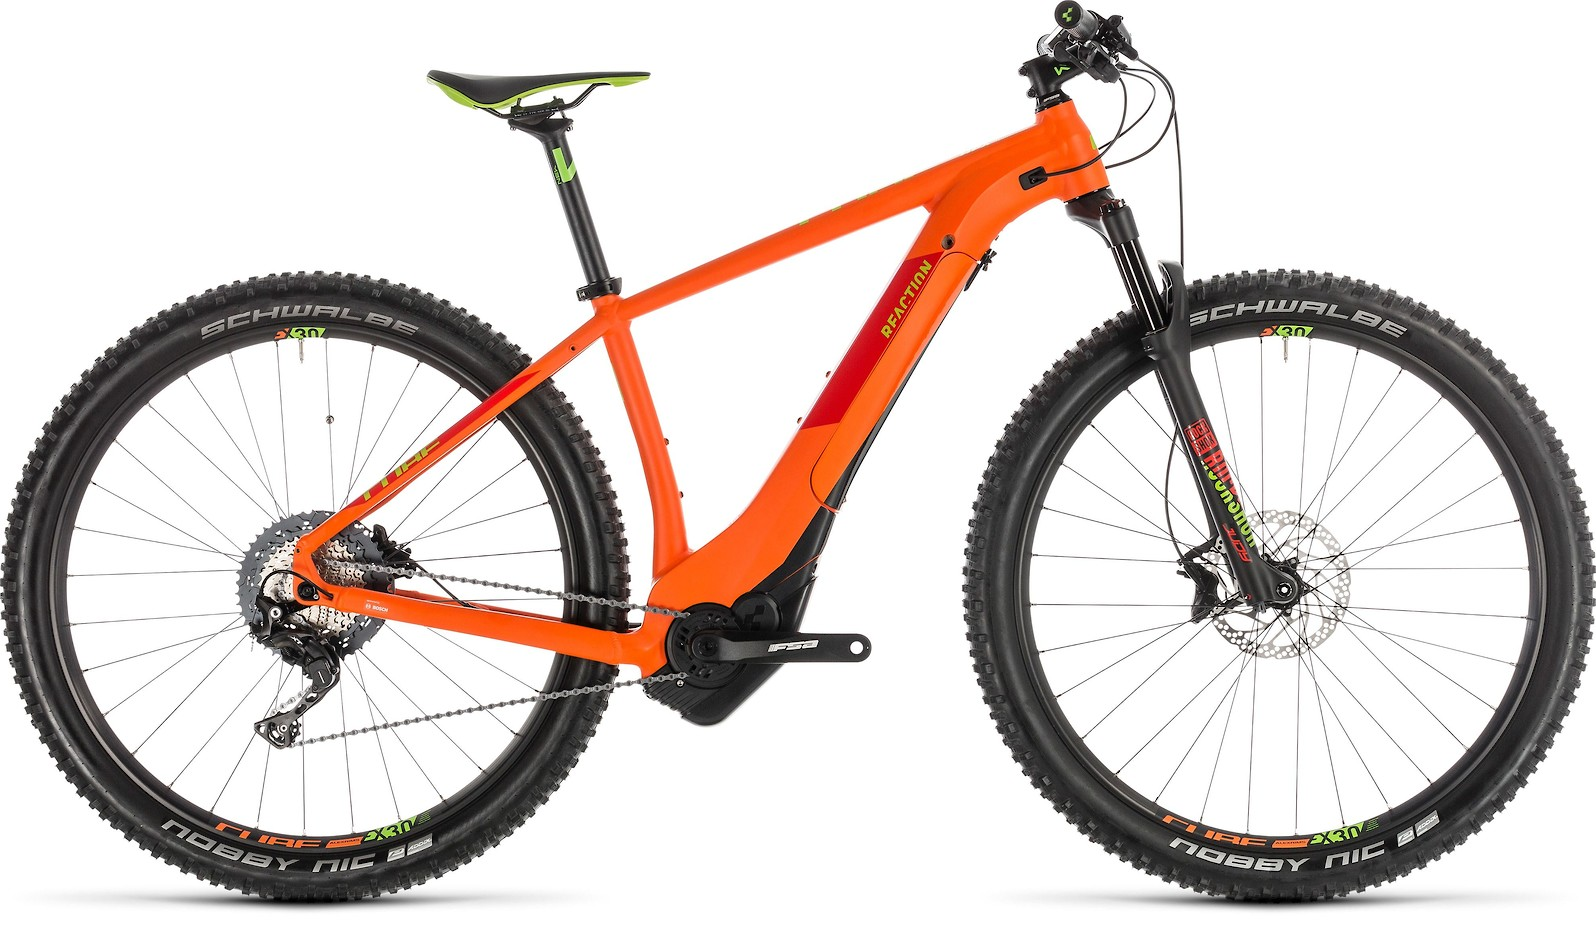 2019 Cube Reaction Hybrid SL 500 in orange'n'green